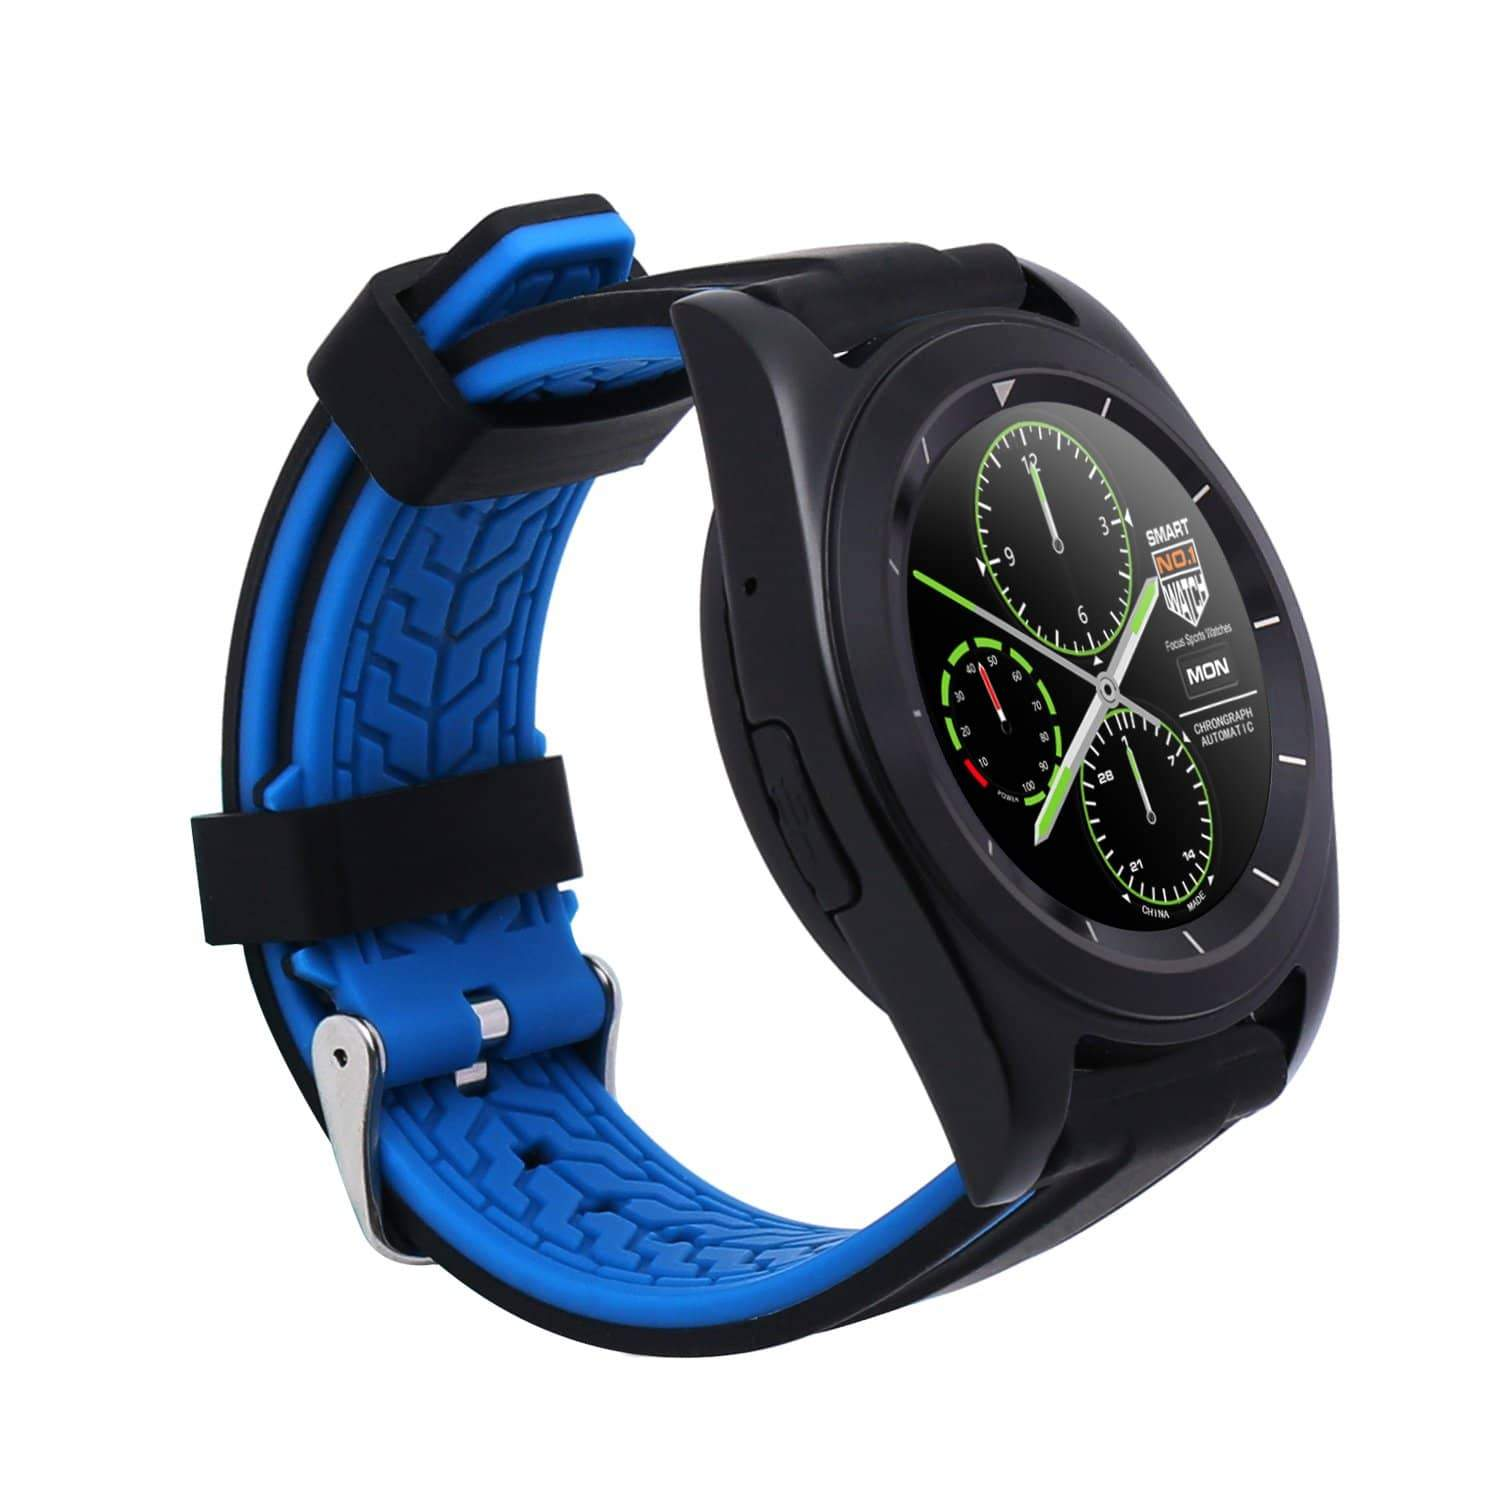 NO.1 G6 MT2502 240*240 380mAh bluetooth 4.0 Heart Rate Smart Watch Mybigfatstore